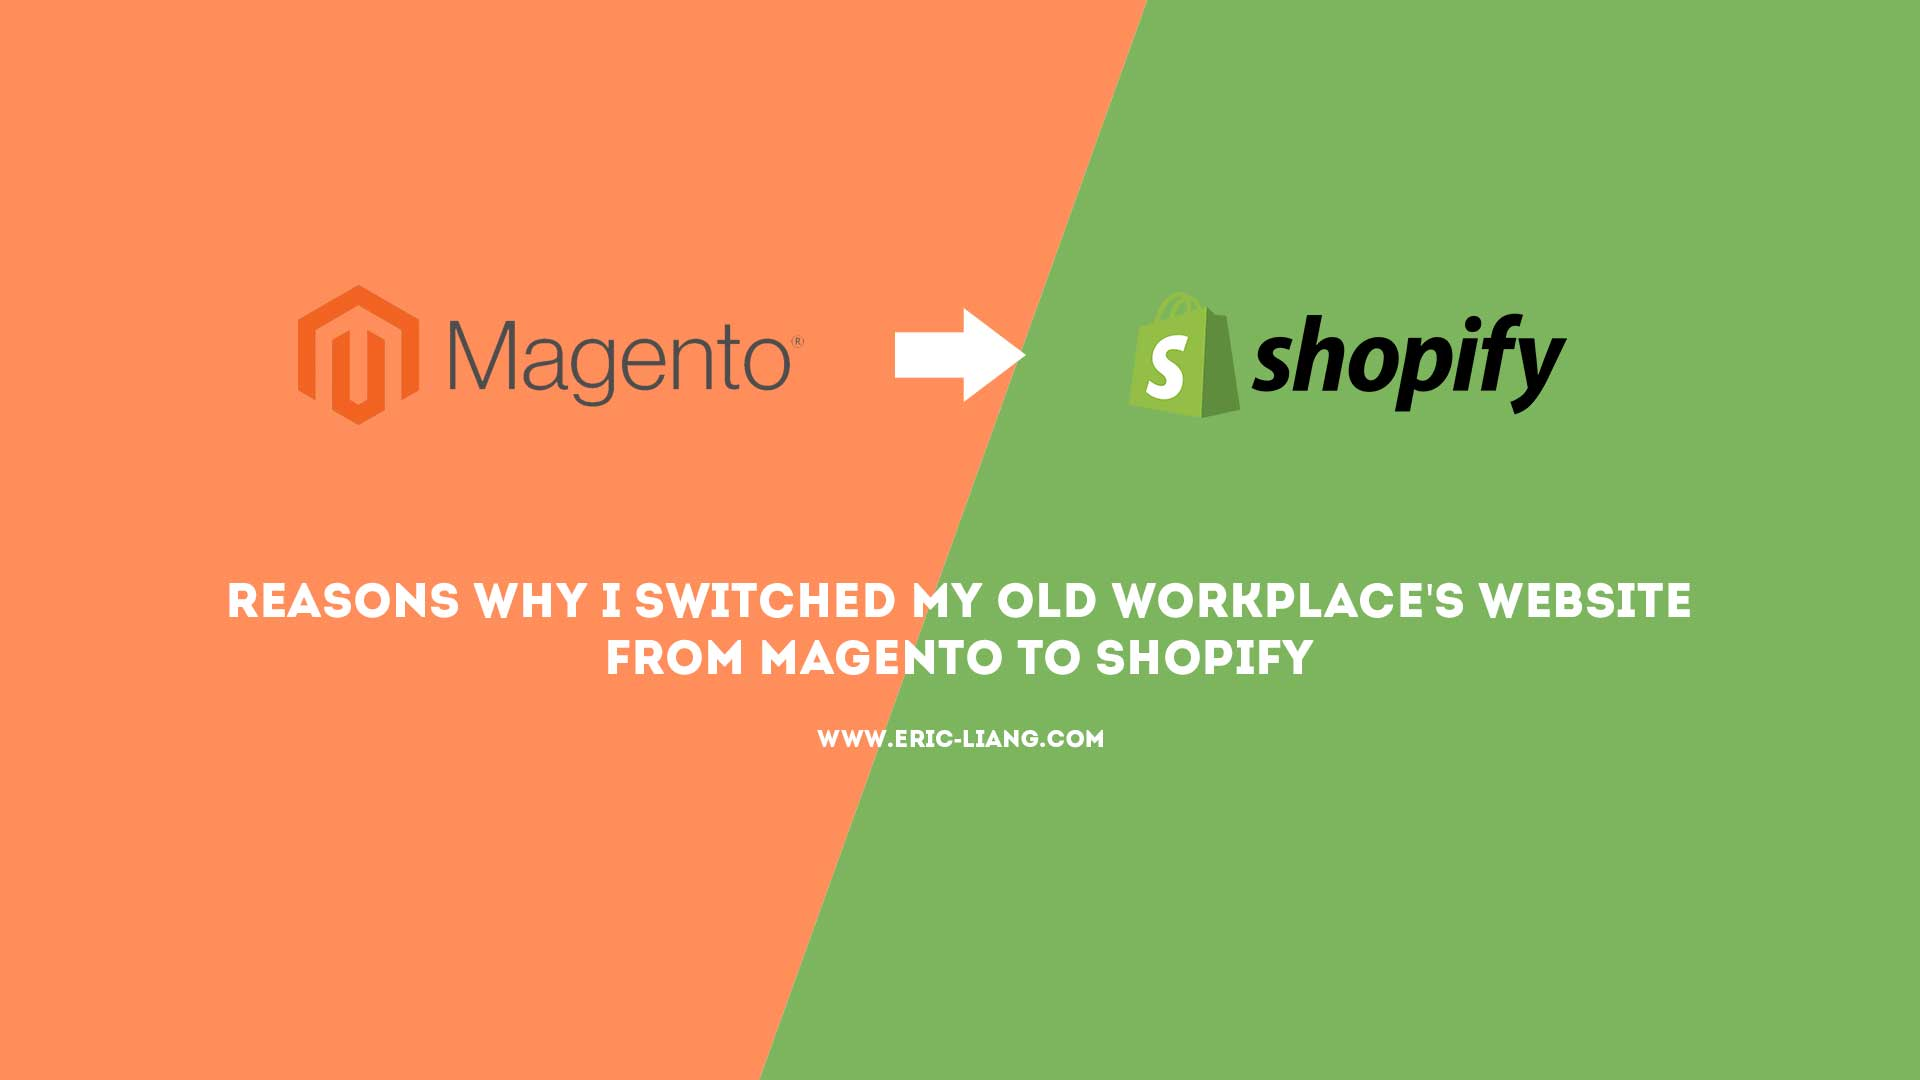 Reasons Why I Switched My Old Workplace's Website From Magento To Shopify